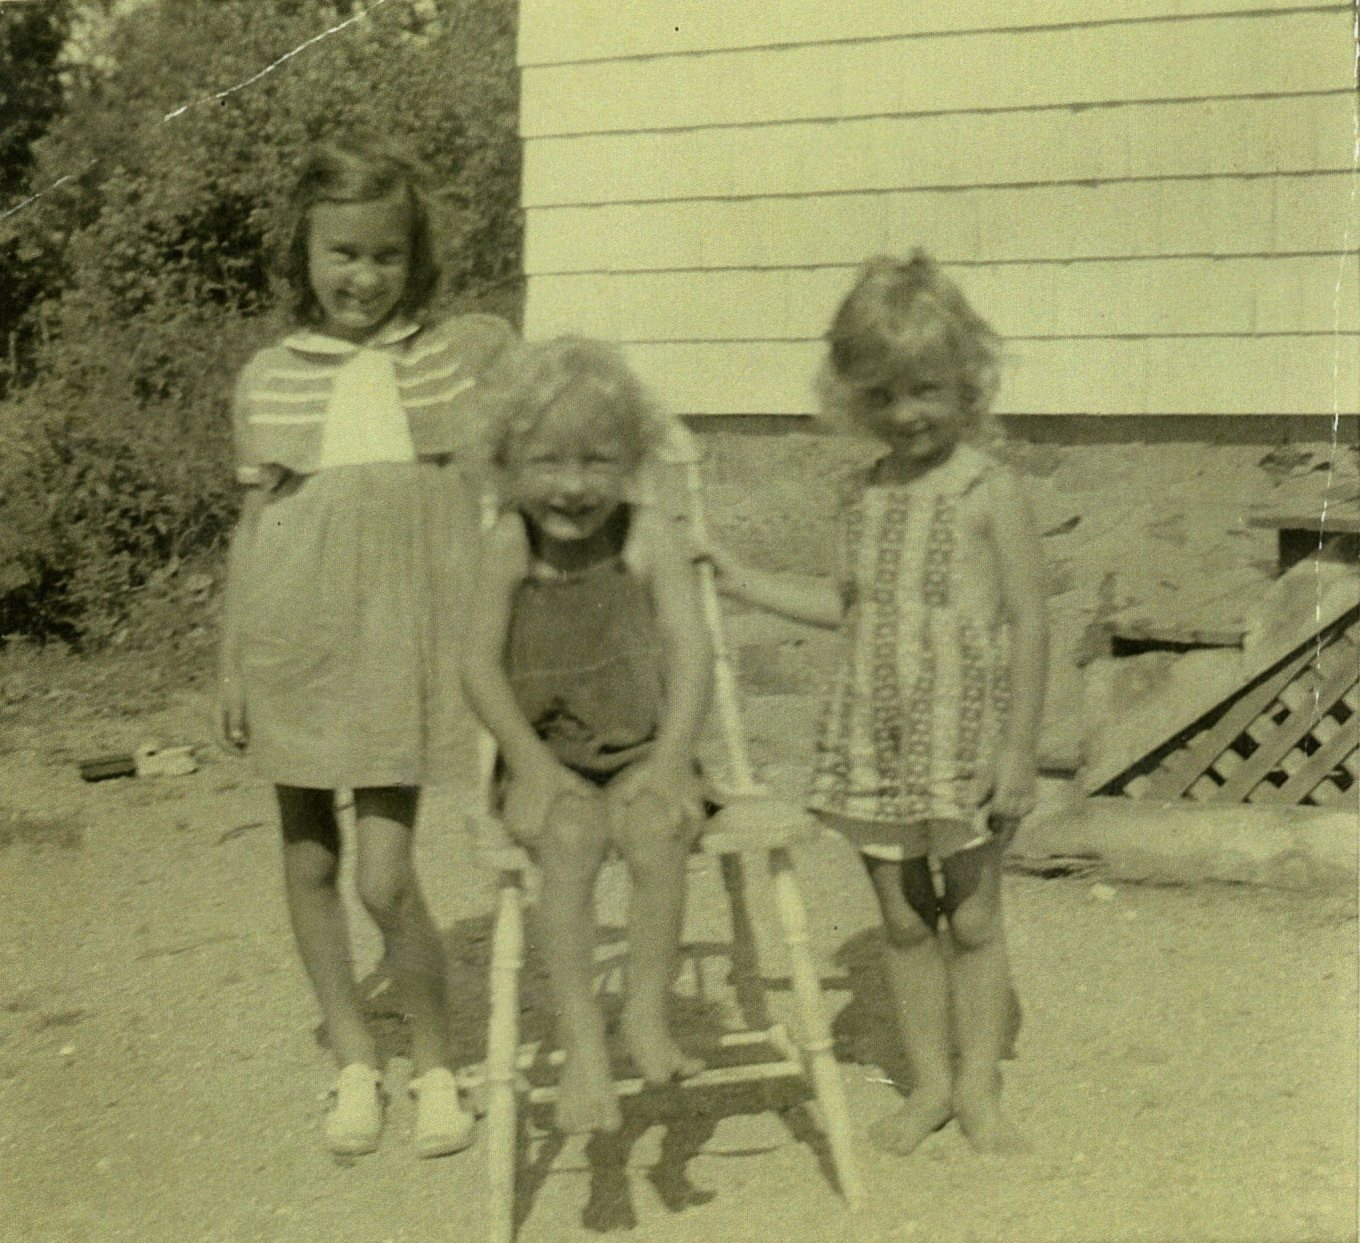 Carlene, Carl and Jo Johnson at Grandma's house in Overlook Ave. Burlington, MA, c. 1942